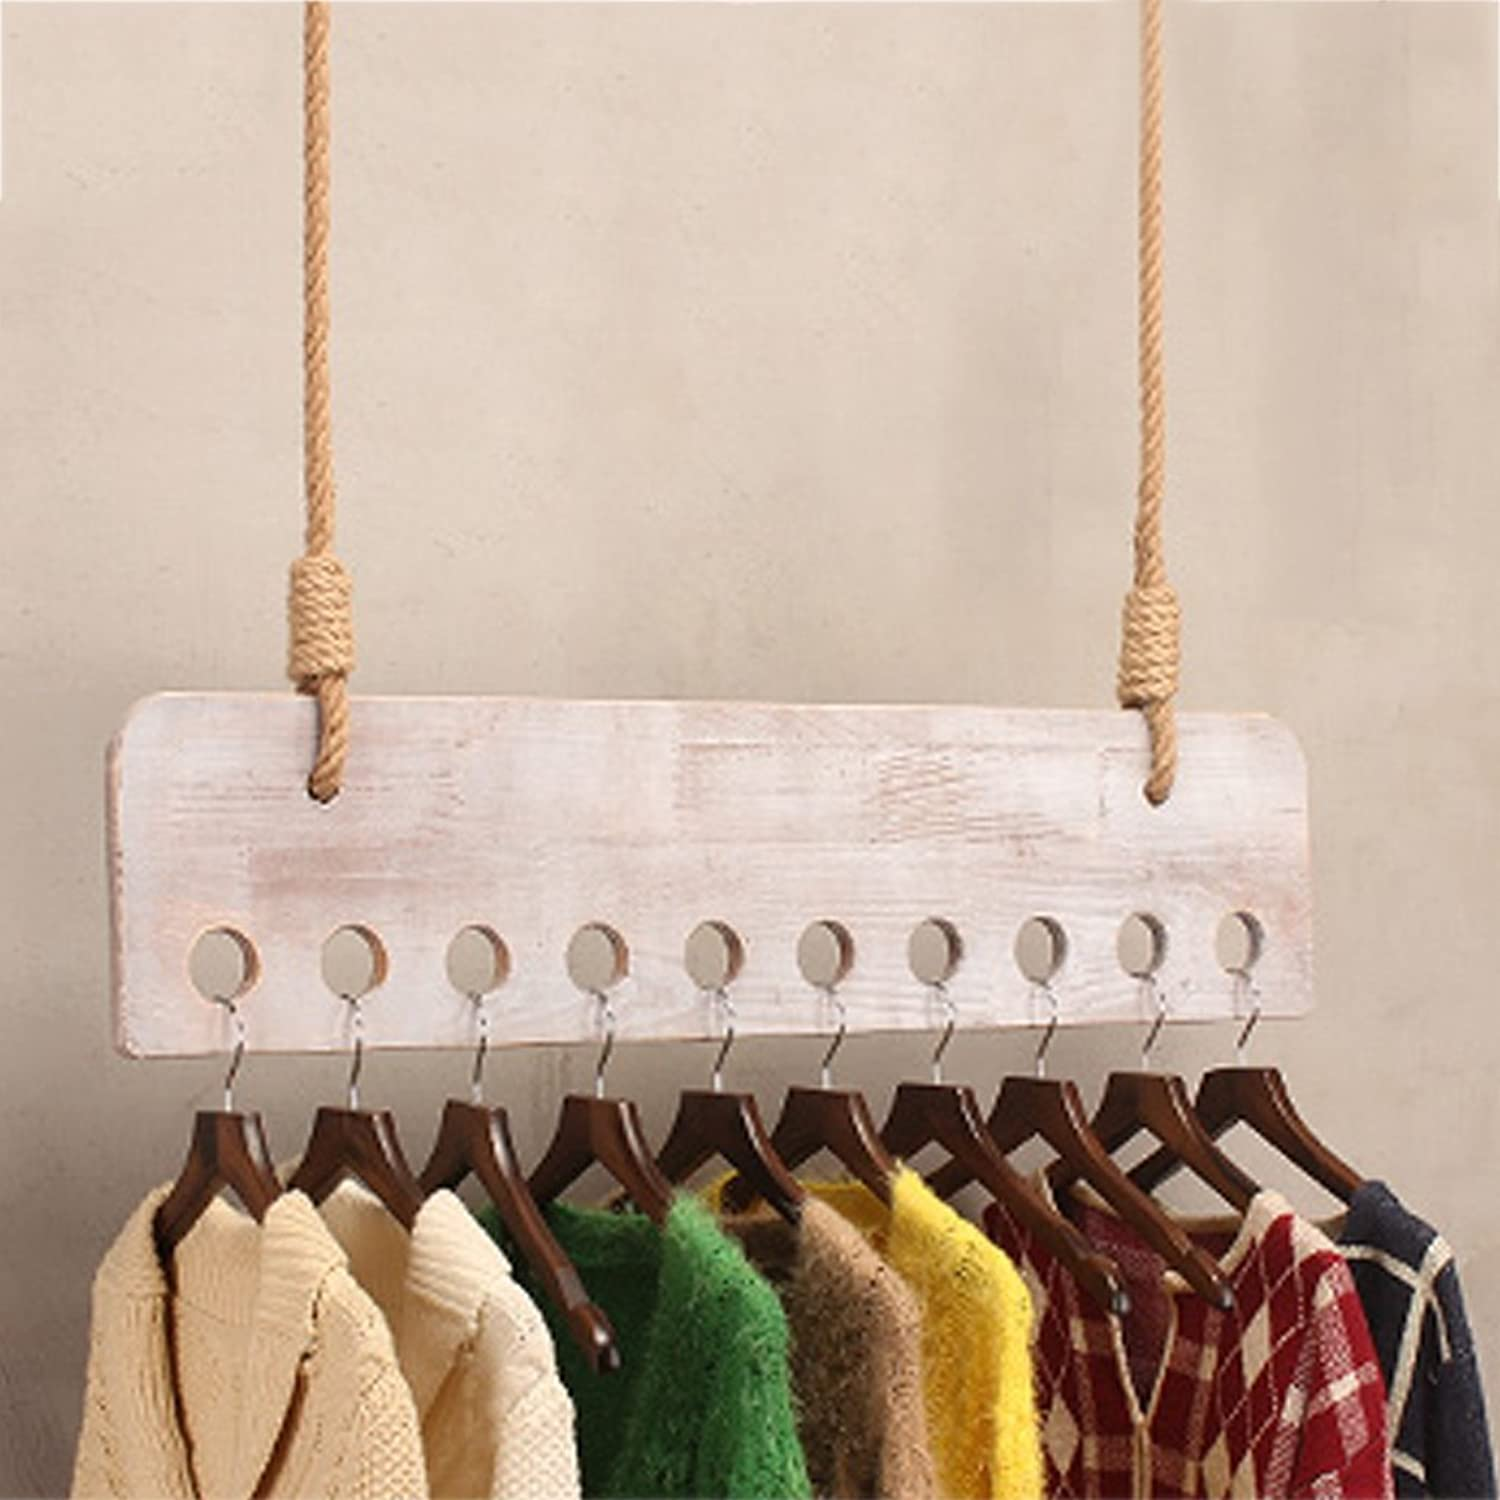 LAXF- Coat Racks Free Standing Wooden Wall Hanger Clothes Hanger Rack Clothes Storage Organiser for Store Utility Room Bedroom White (color    2-100cm)